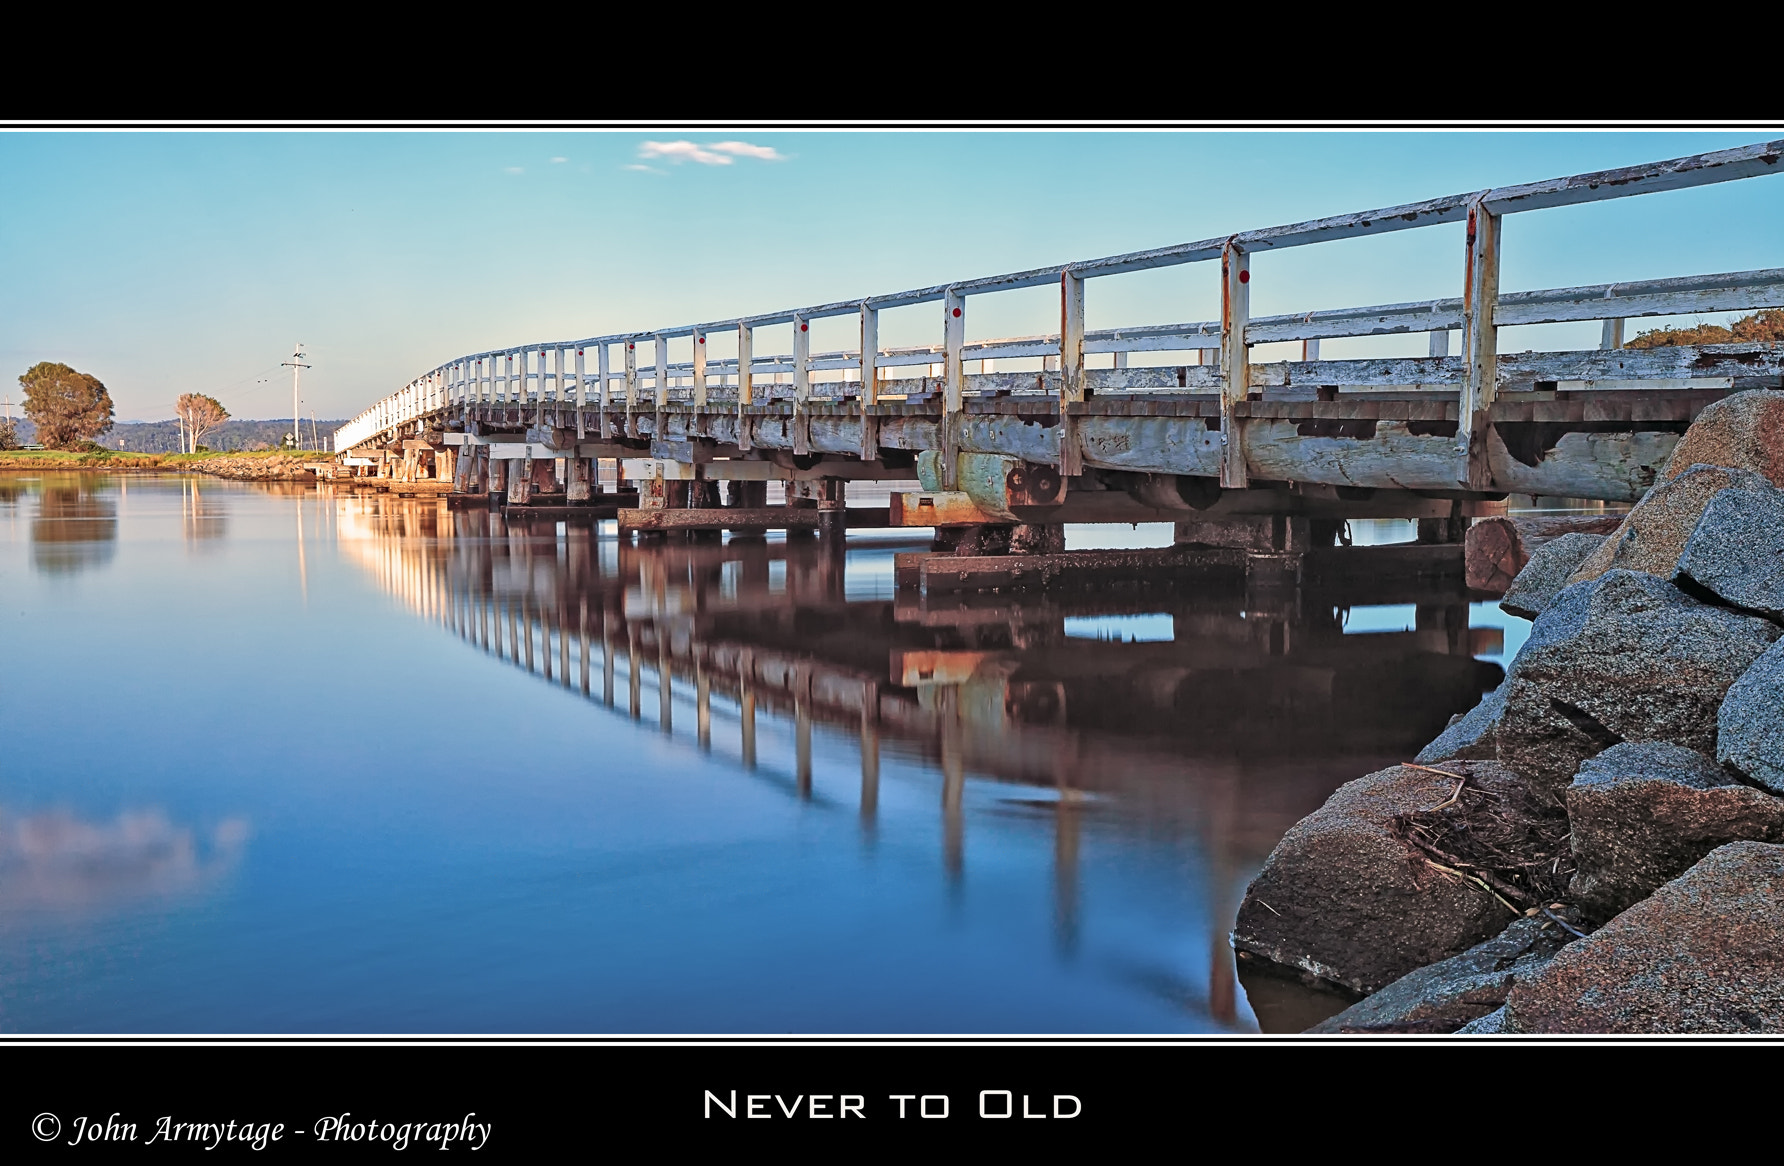 Photograph Never Too Old by John Armytage on 500px